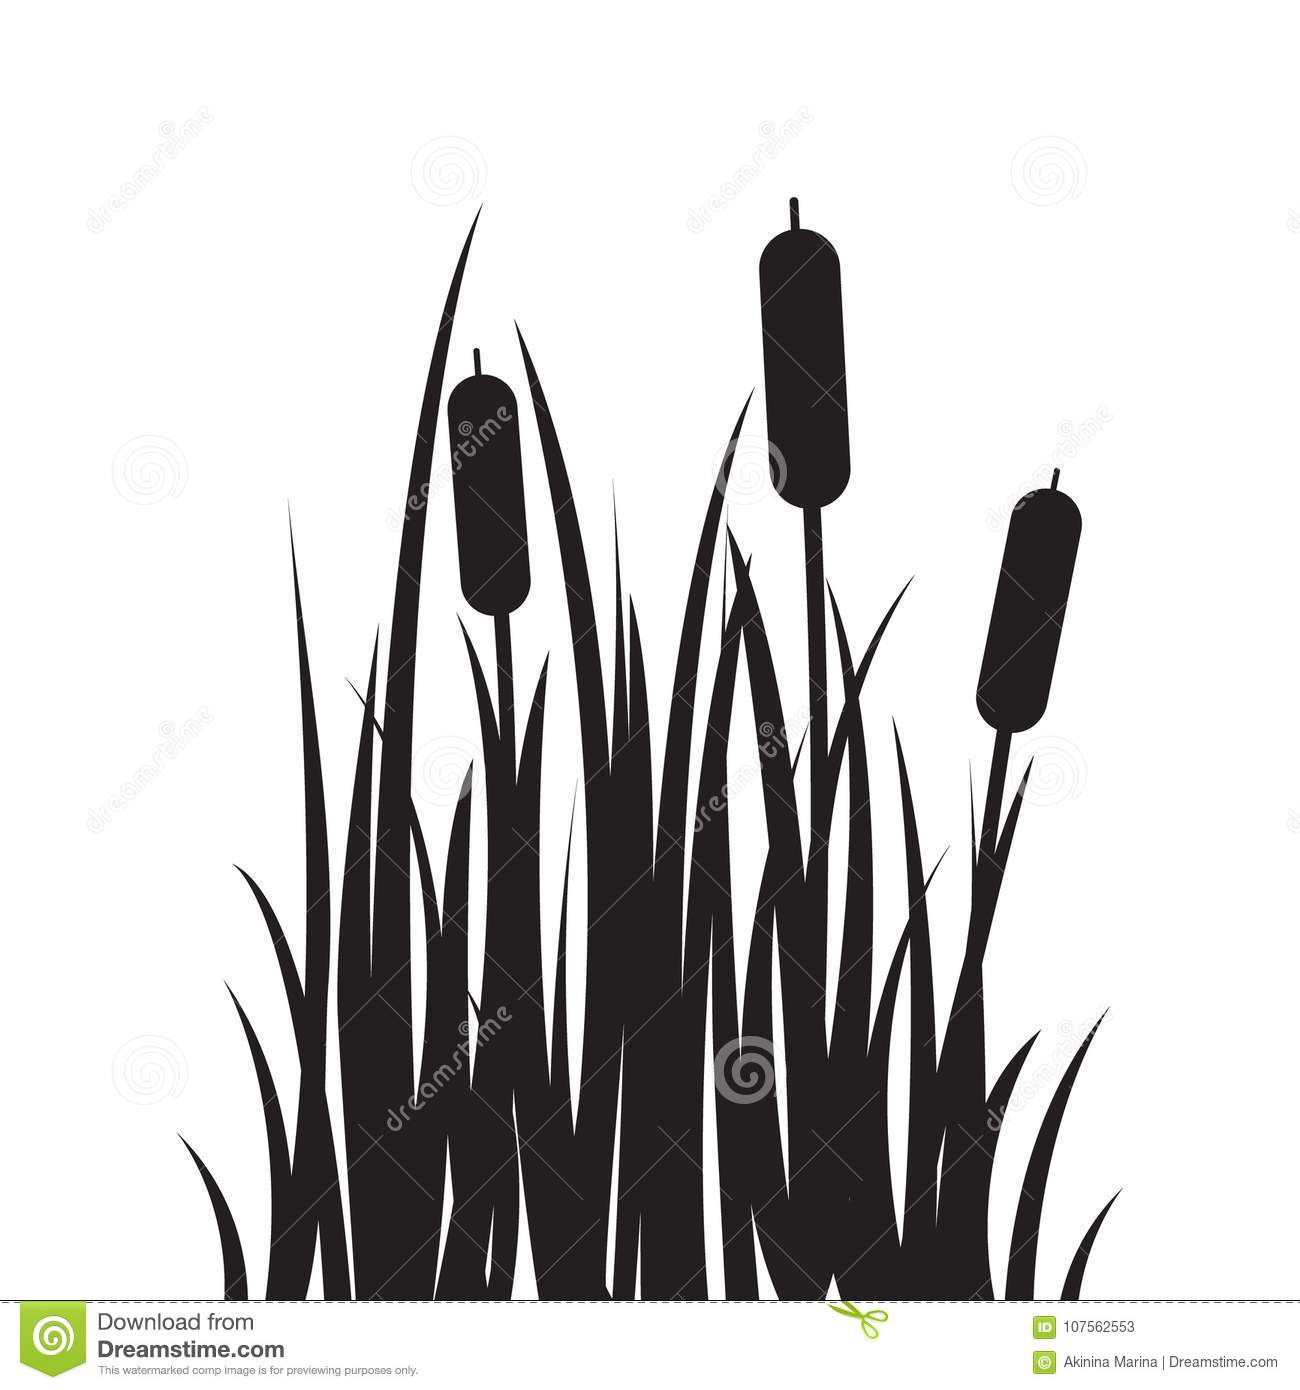 Carved silhouette flat icon, simple vector design. Cartoon grass with bulrush.